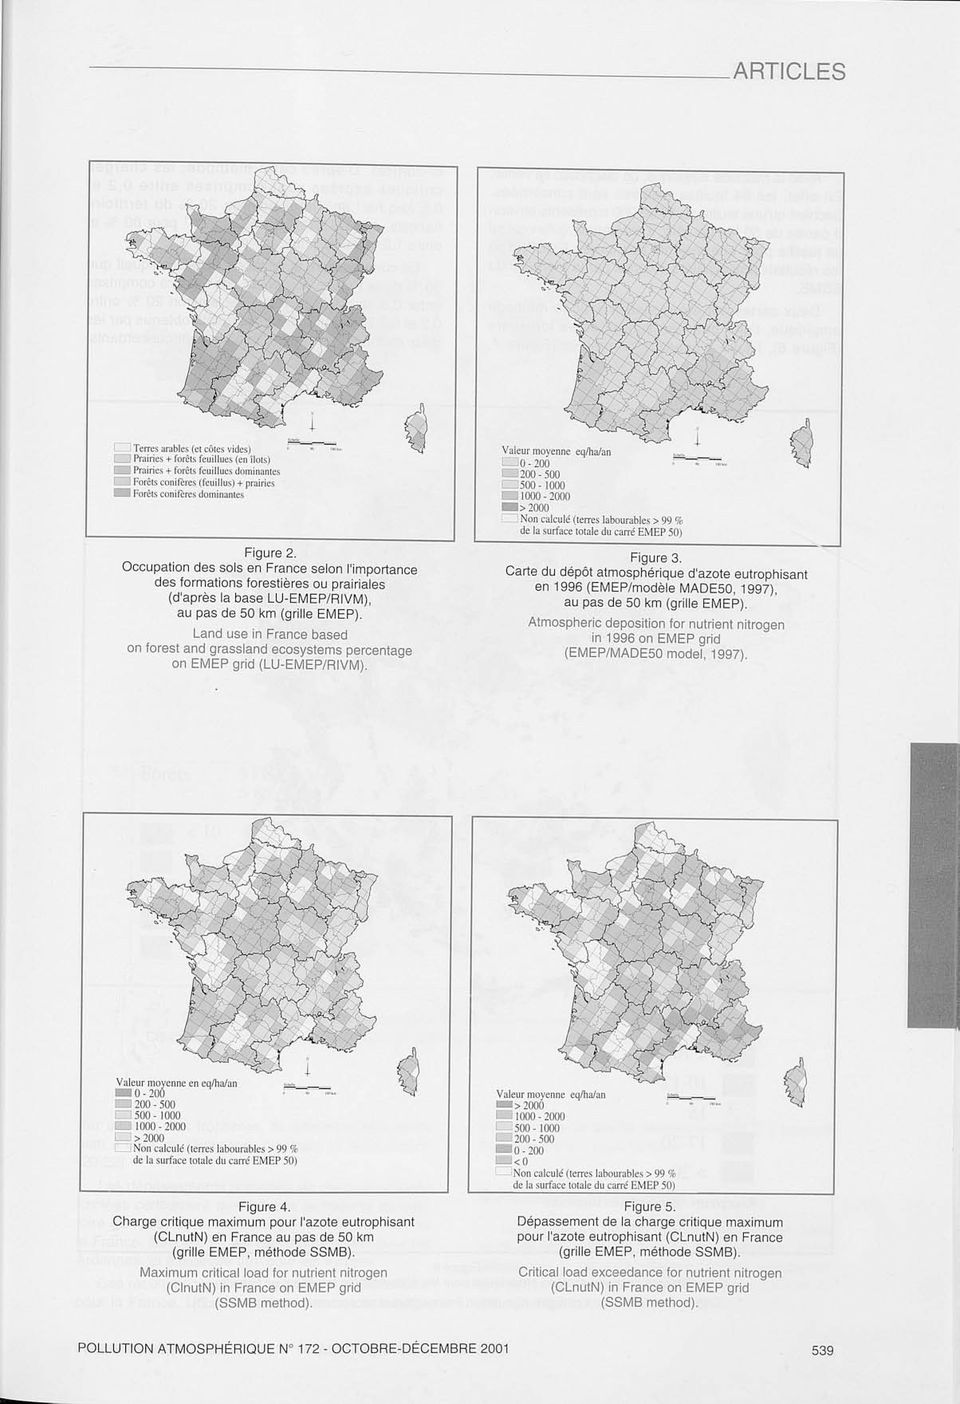 Land use in France based on forest and grassland ecosystems percentage on EMEP grid (LU-EMEP/RIVM). Valeur moyenne eqlhalan C O- 200.